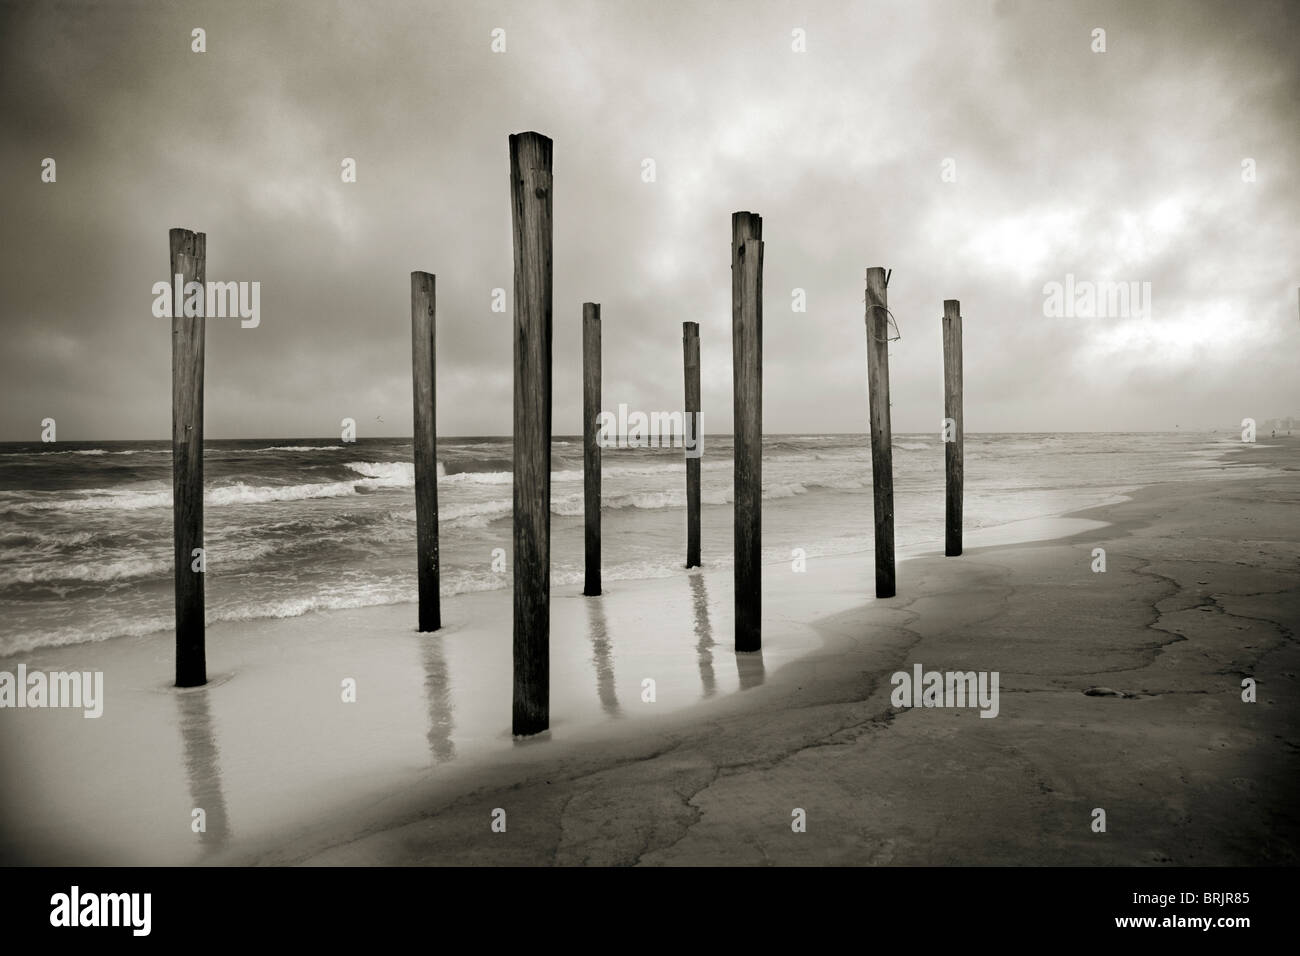 A sepia toned shot of old beach posts at the shoreline with clouds and ocean in the background. - Stock Image